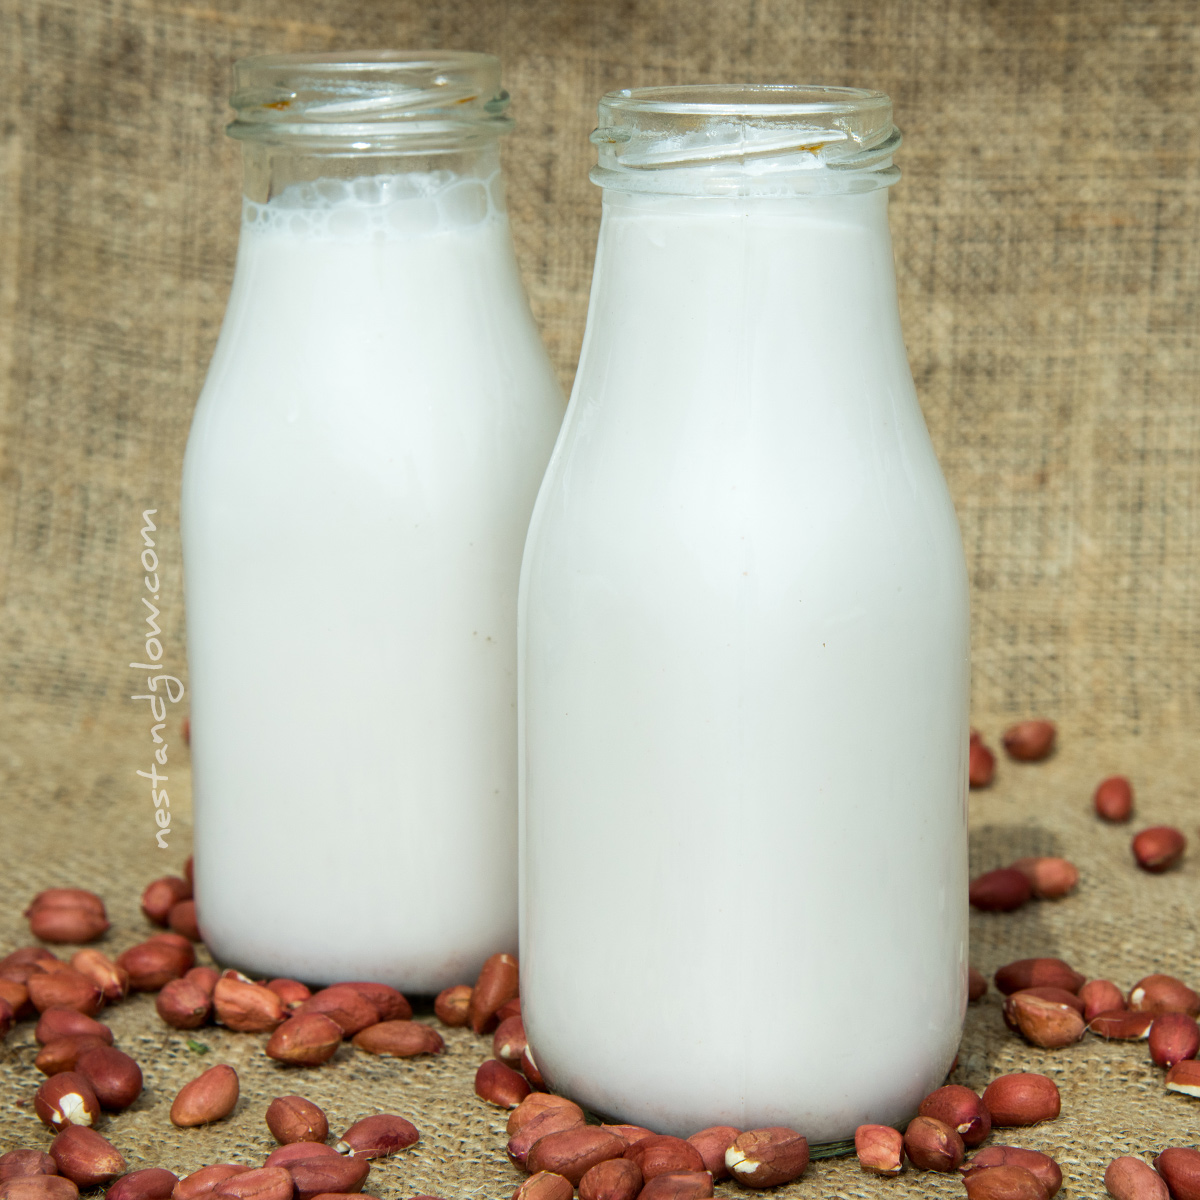 Sprouted Peanut Milk 2-Ingredients